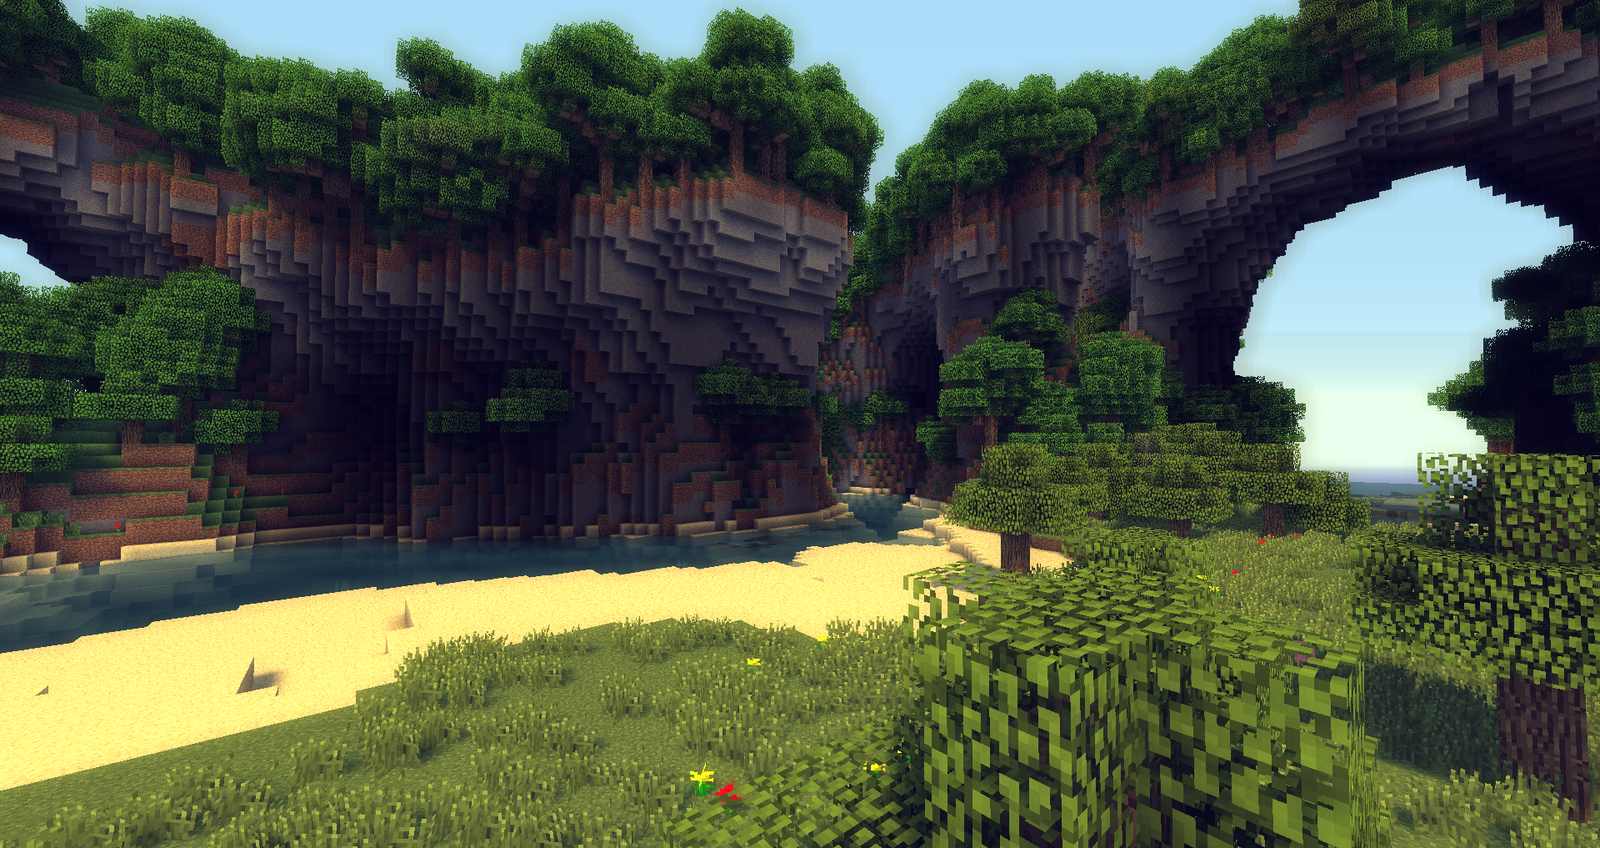 c0a9d  8xpq [1.7.10] MrMeep x3's Shaders Mod Download